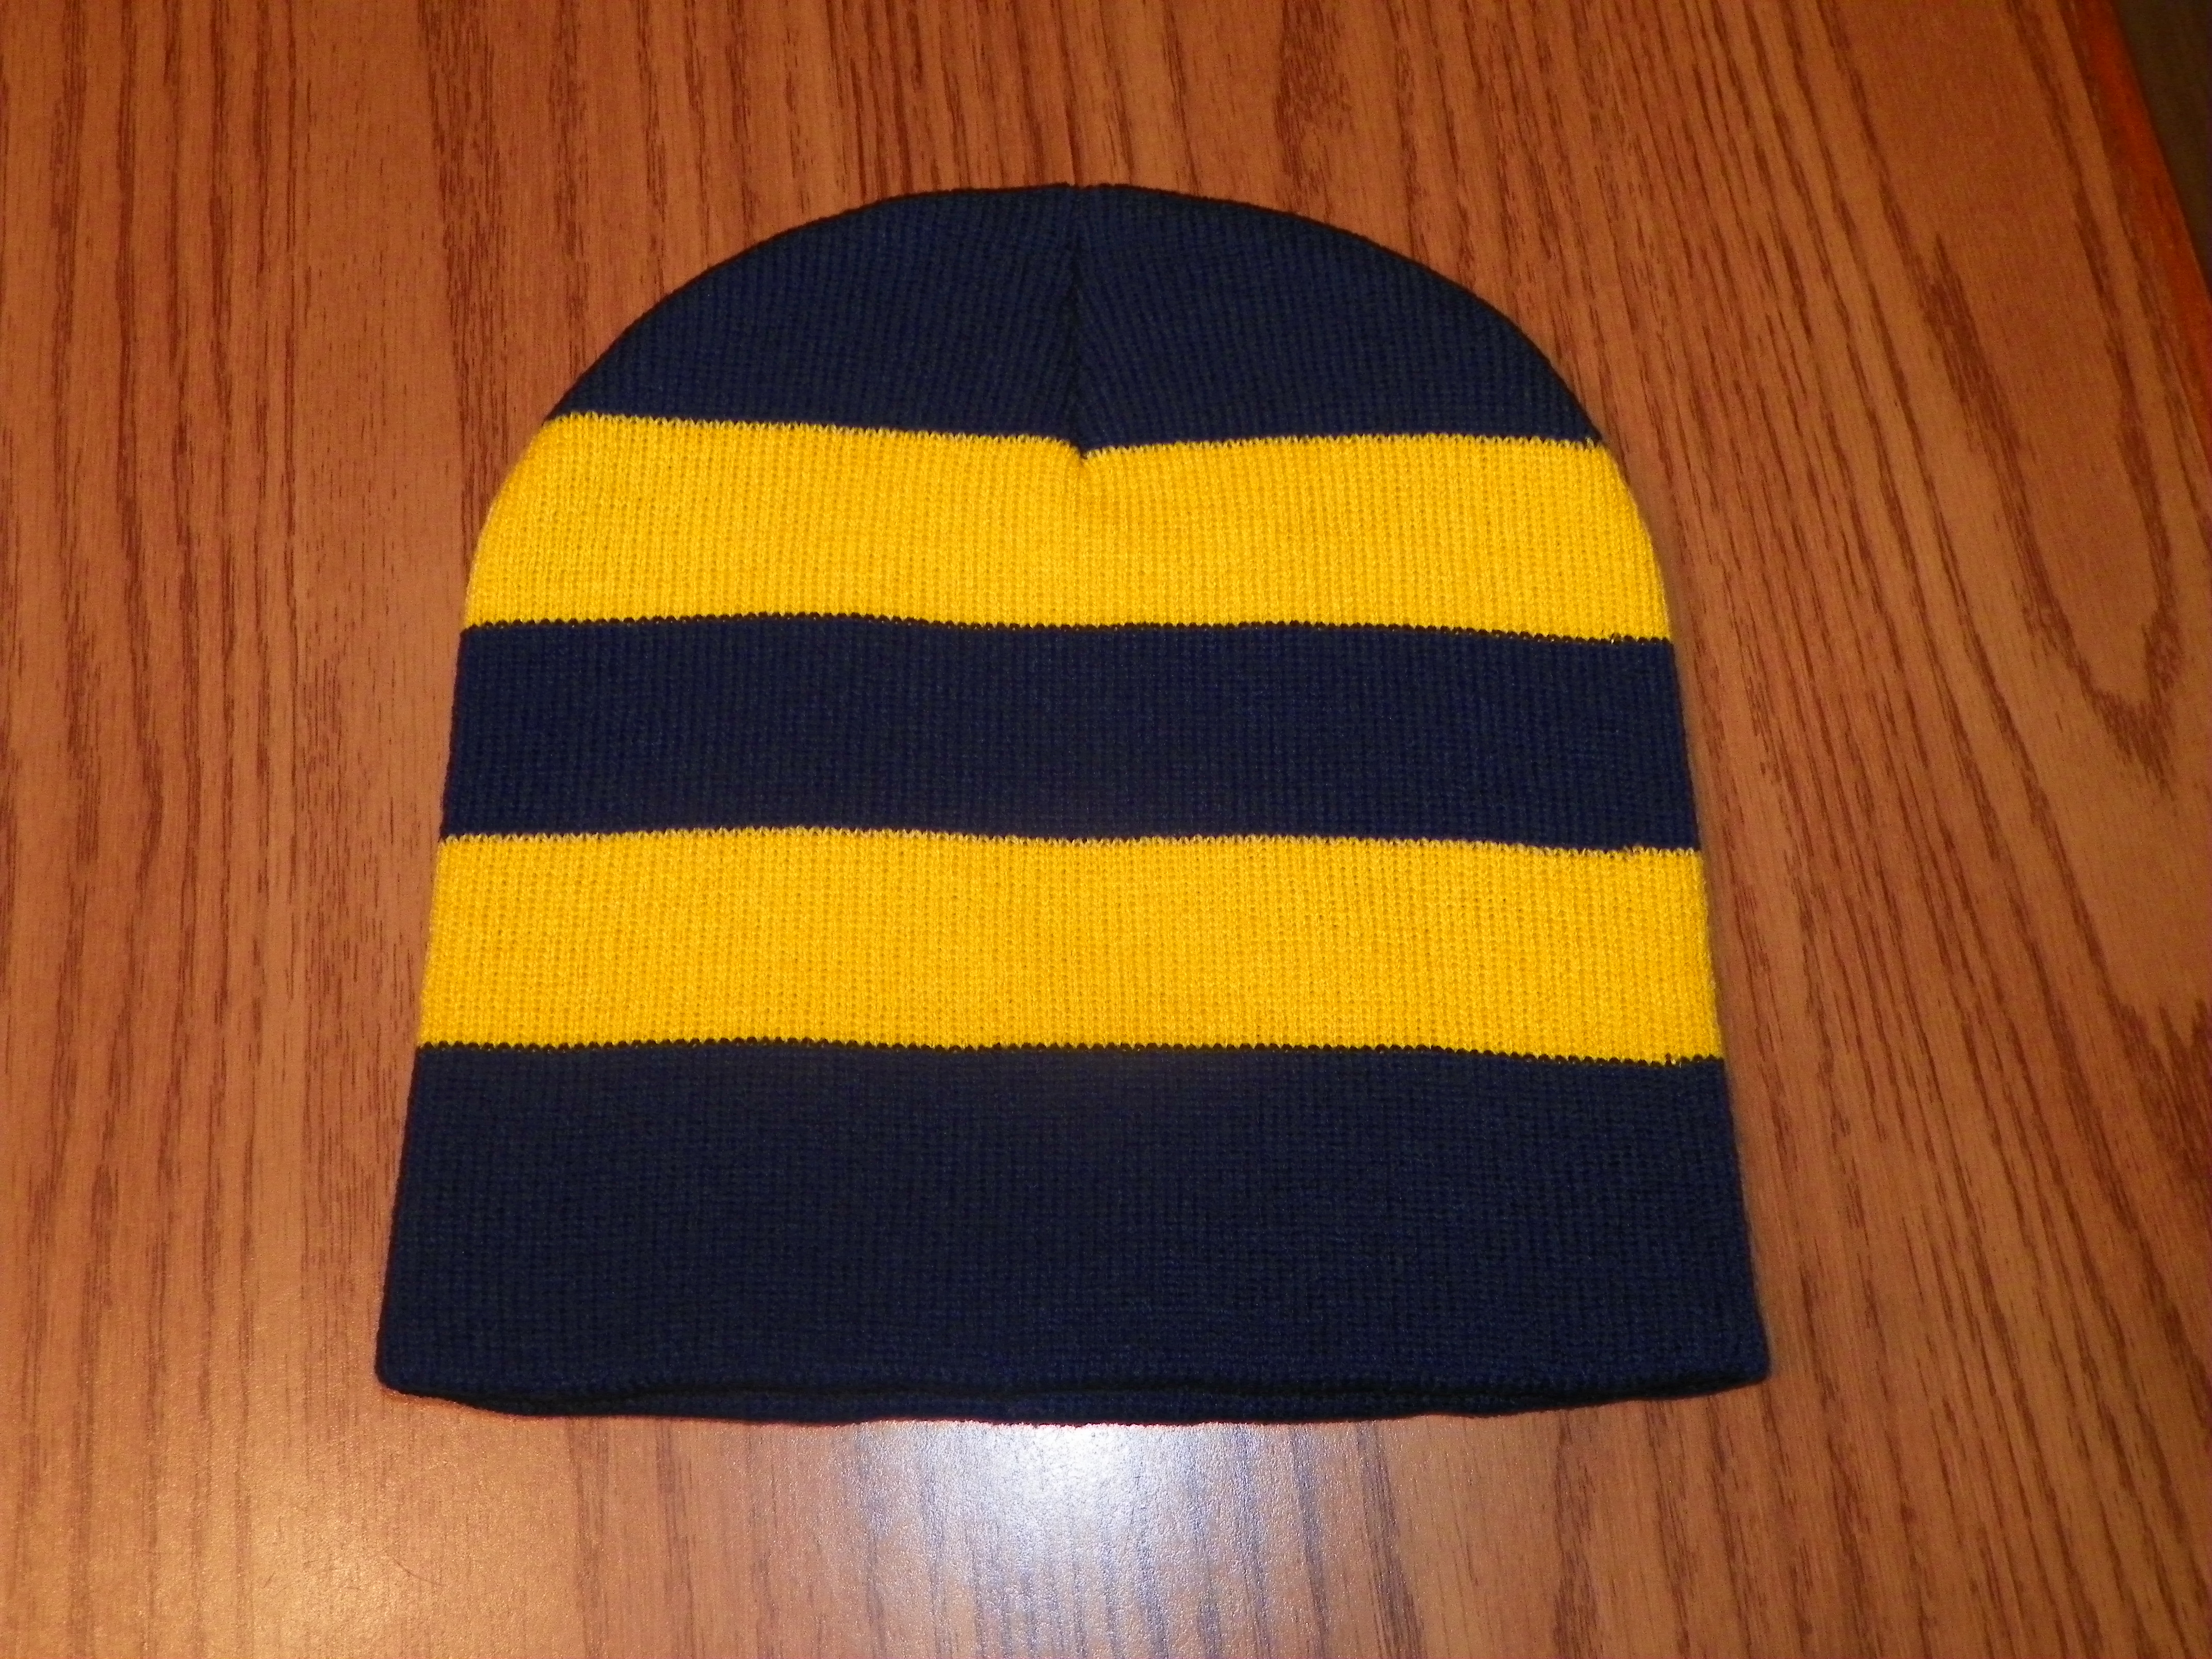 a1785e1b9 Navy and Gold Striped Beanie Hat